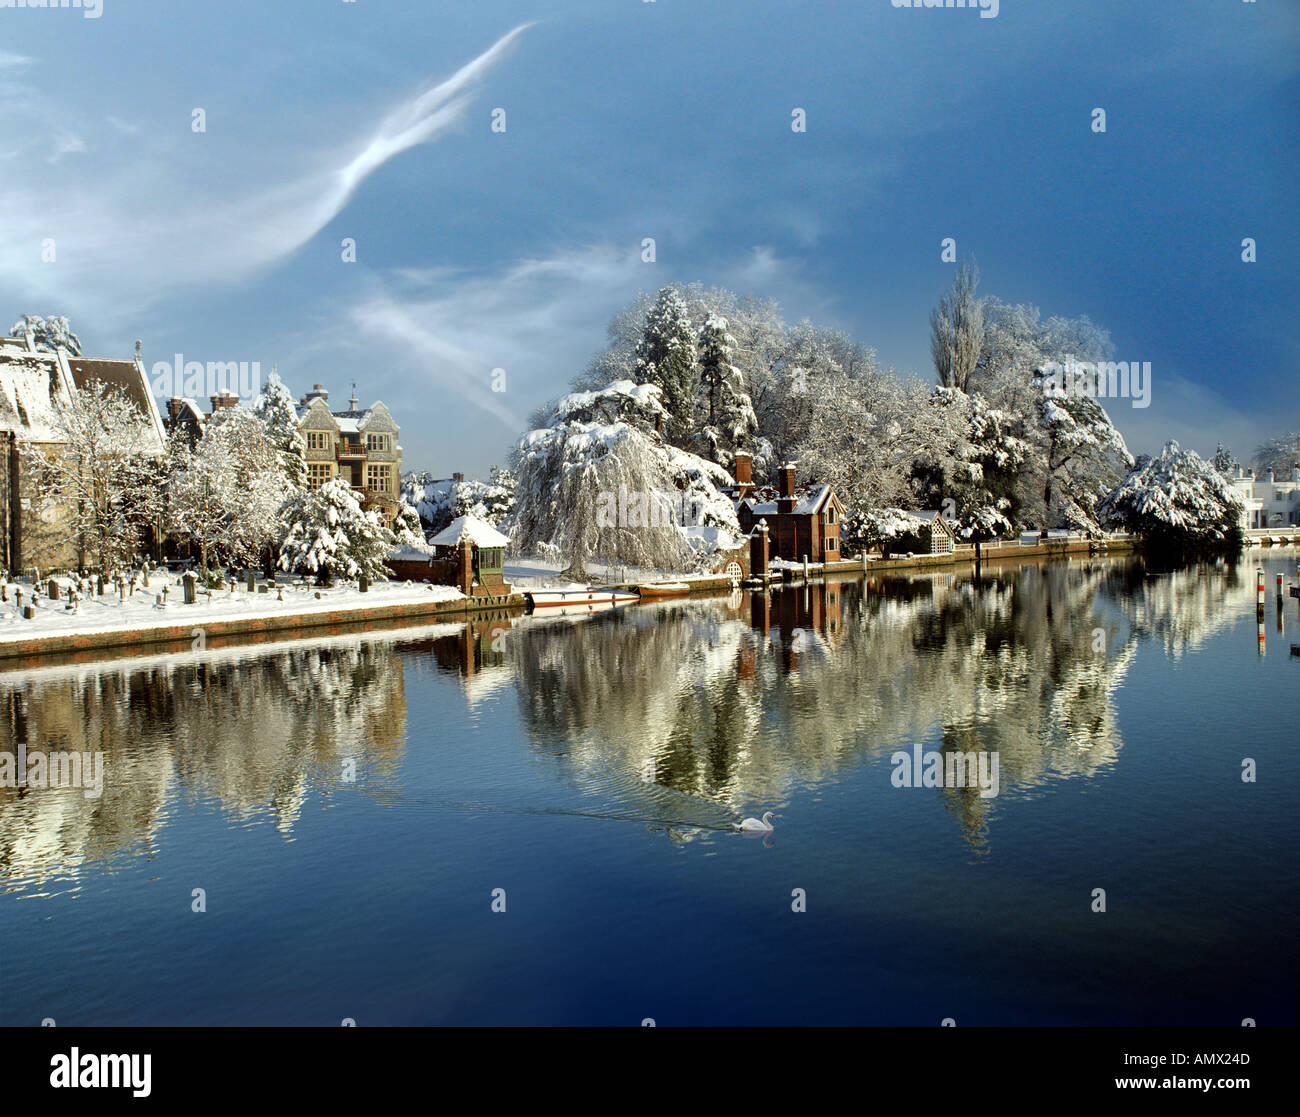 GB - BUCKINGHAMSHIRE: Town of Marlow and River Thames Stock Photo